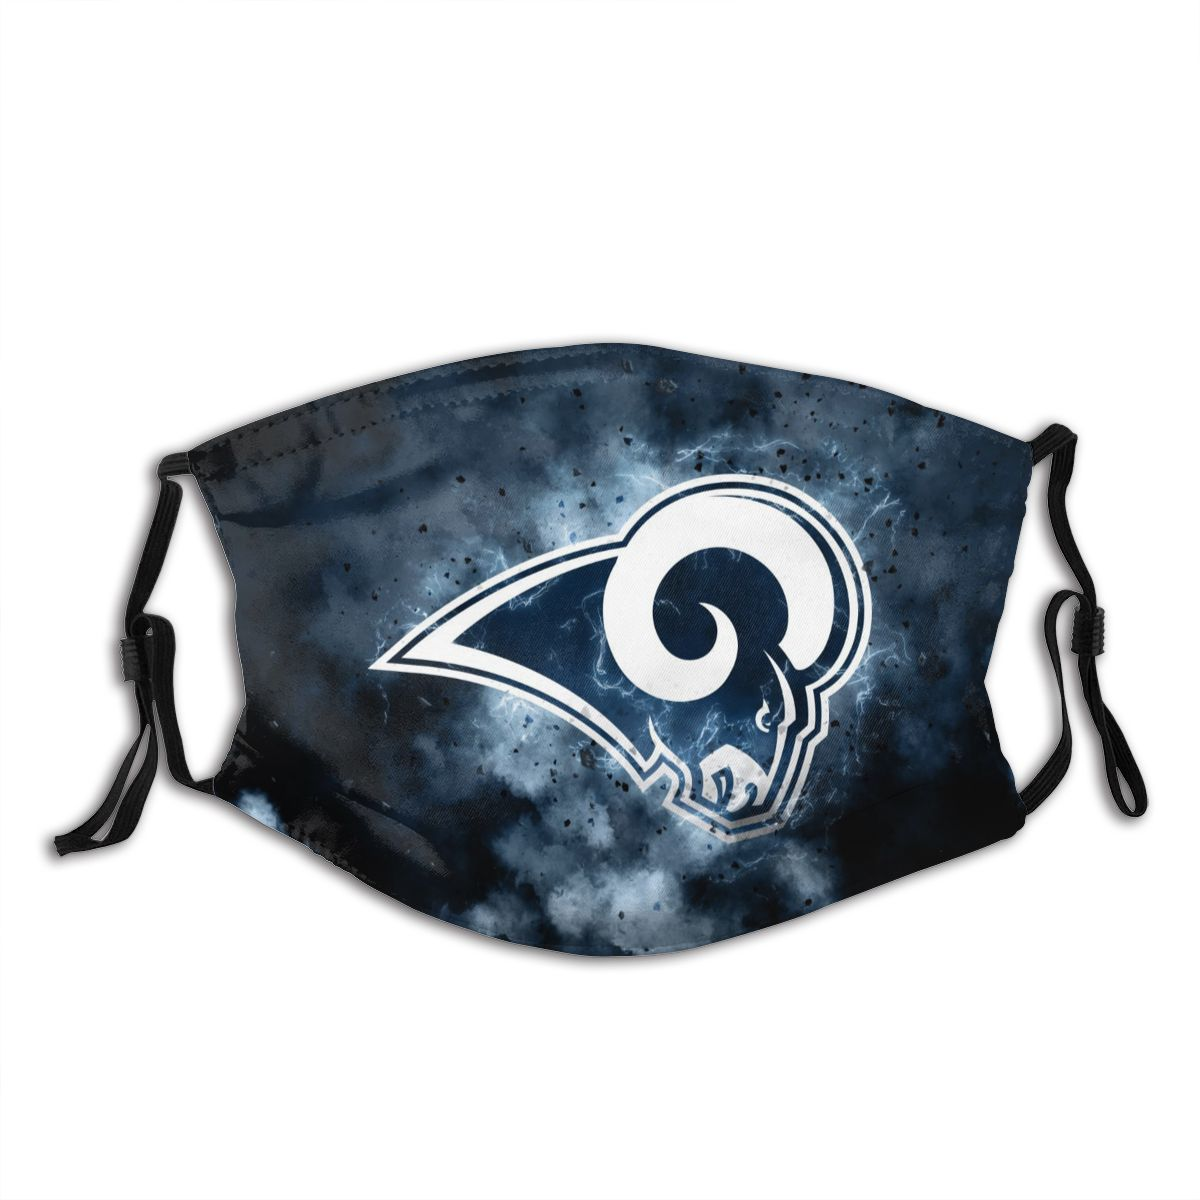 Rams Illustration Art Adult Cloth Face Covering With Filter